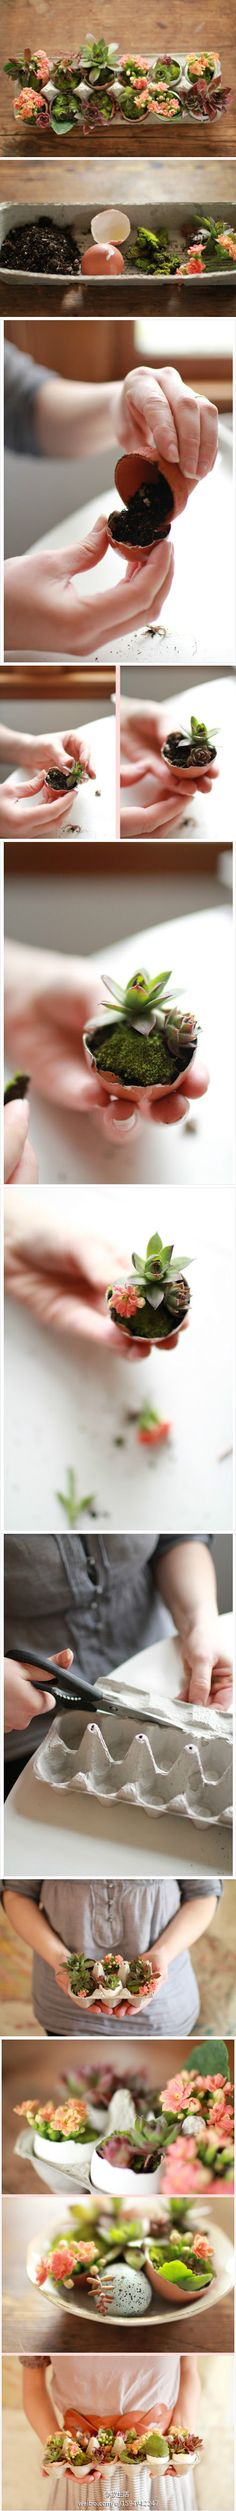 Succulents planted in egg cartons (egg shells optional)